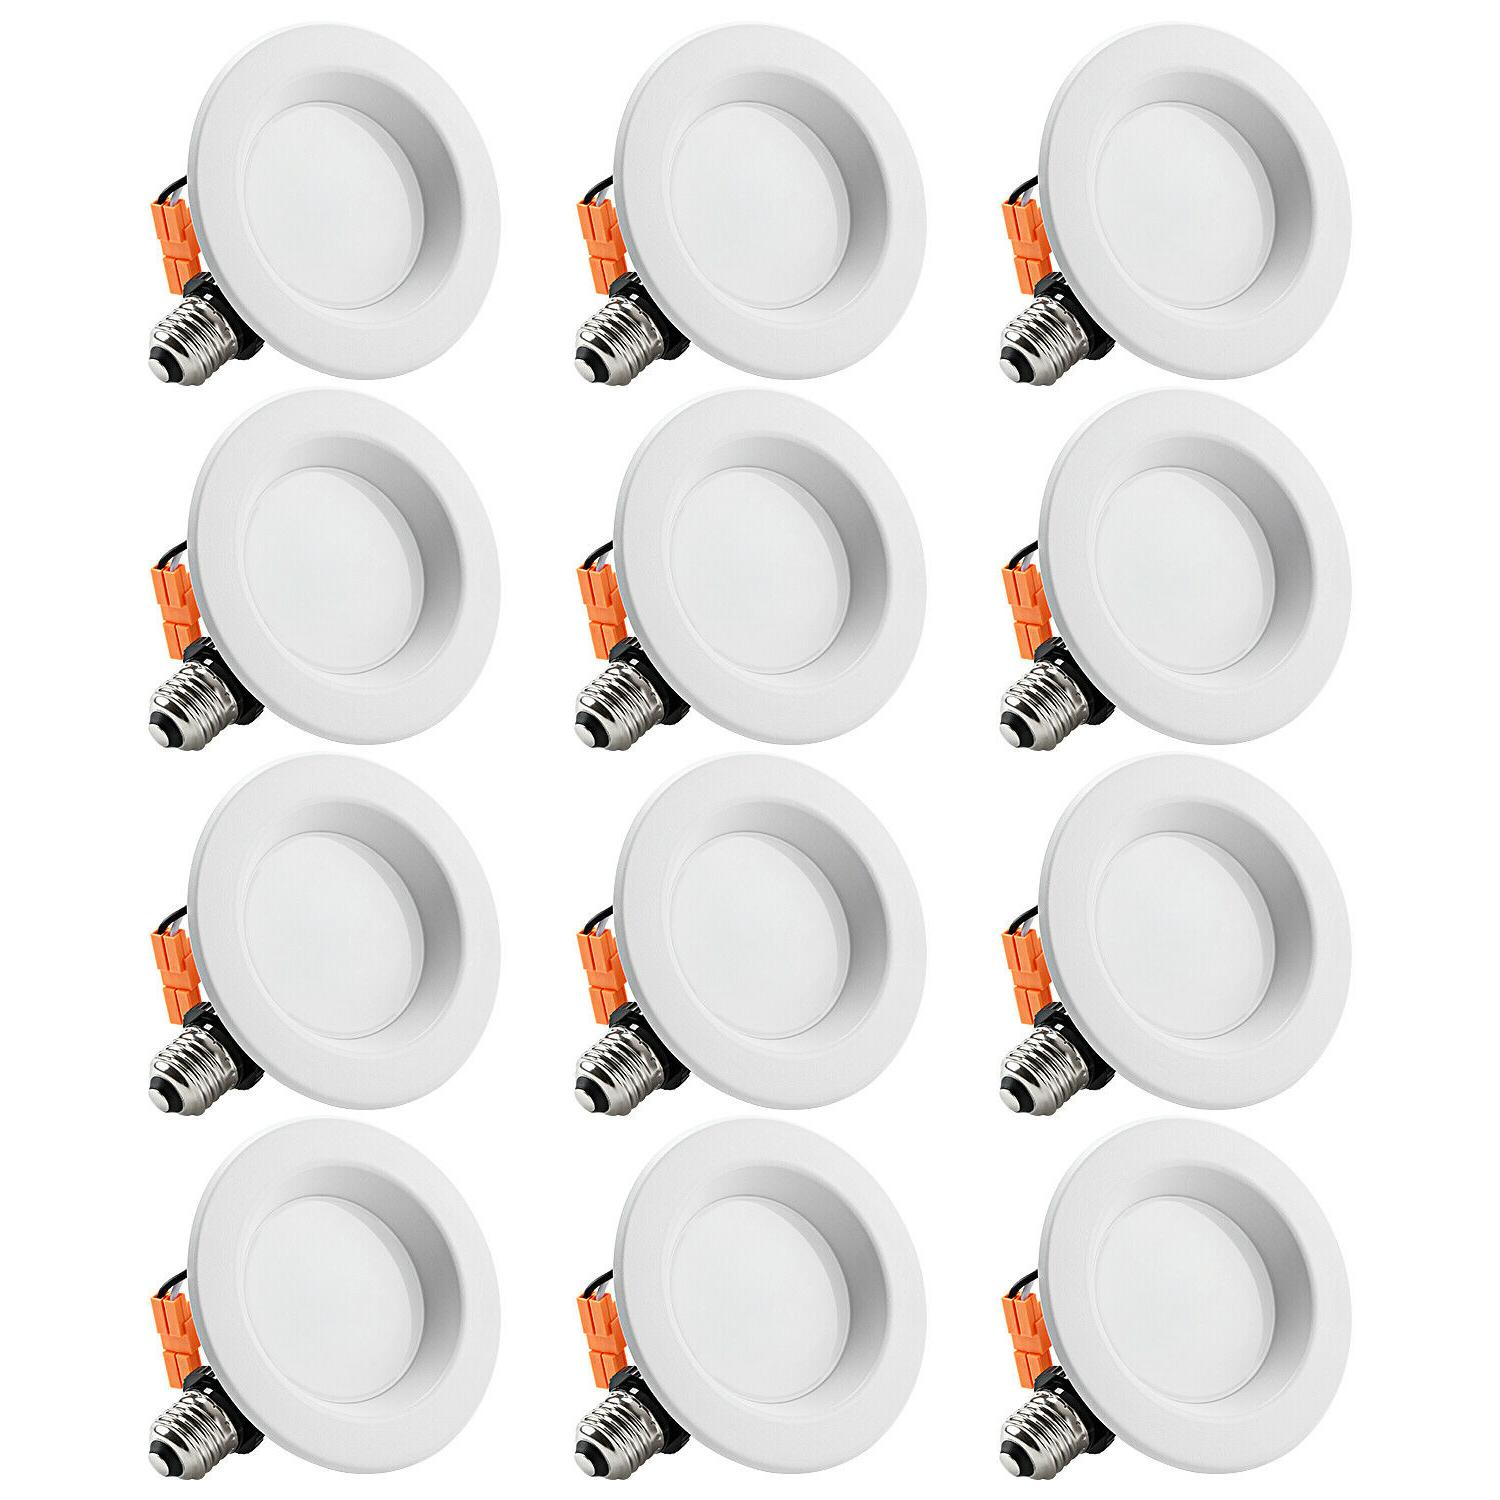 12 pack 6 inch led ceiling light